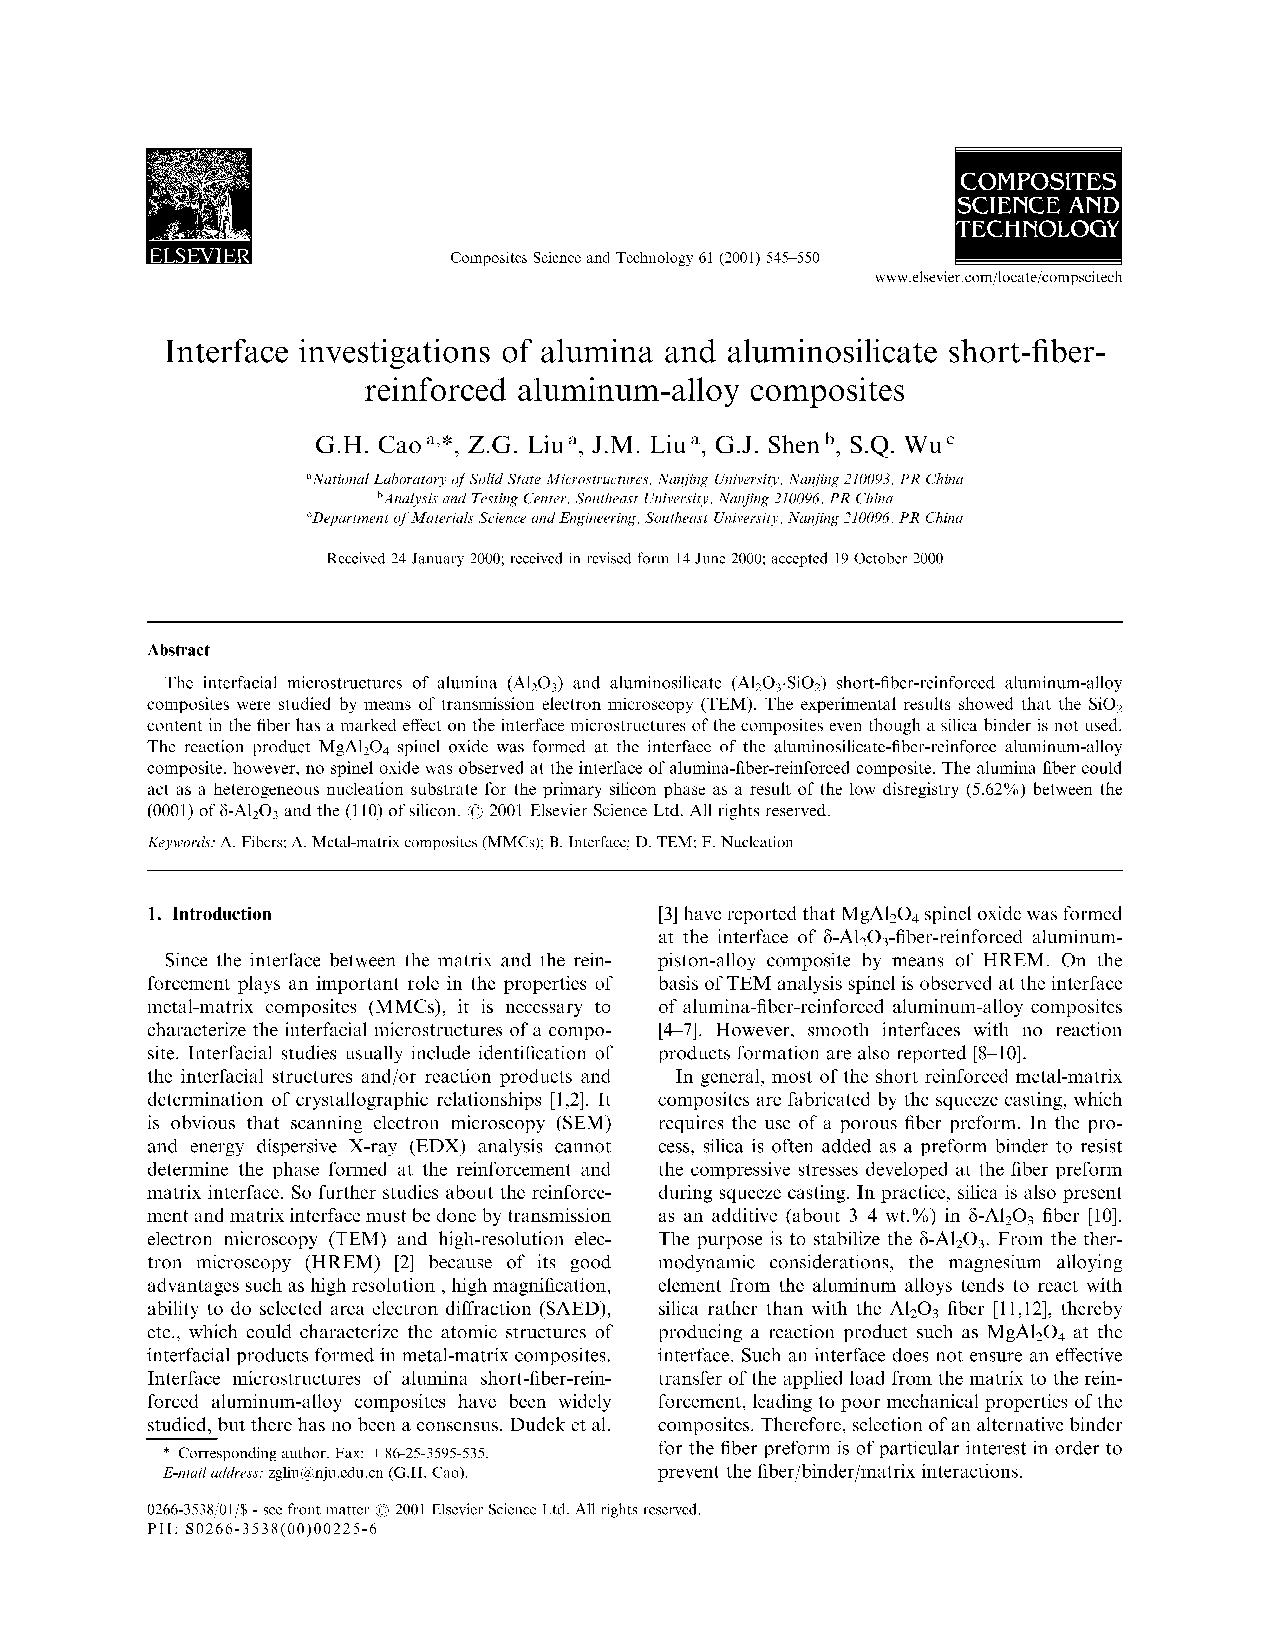 Iterface in vesting ations of alumina and aluminosilicate short-fiber-reinforced aluminum-alloy composites8